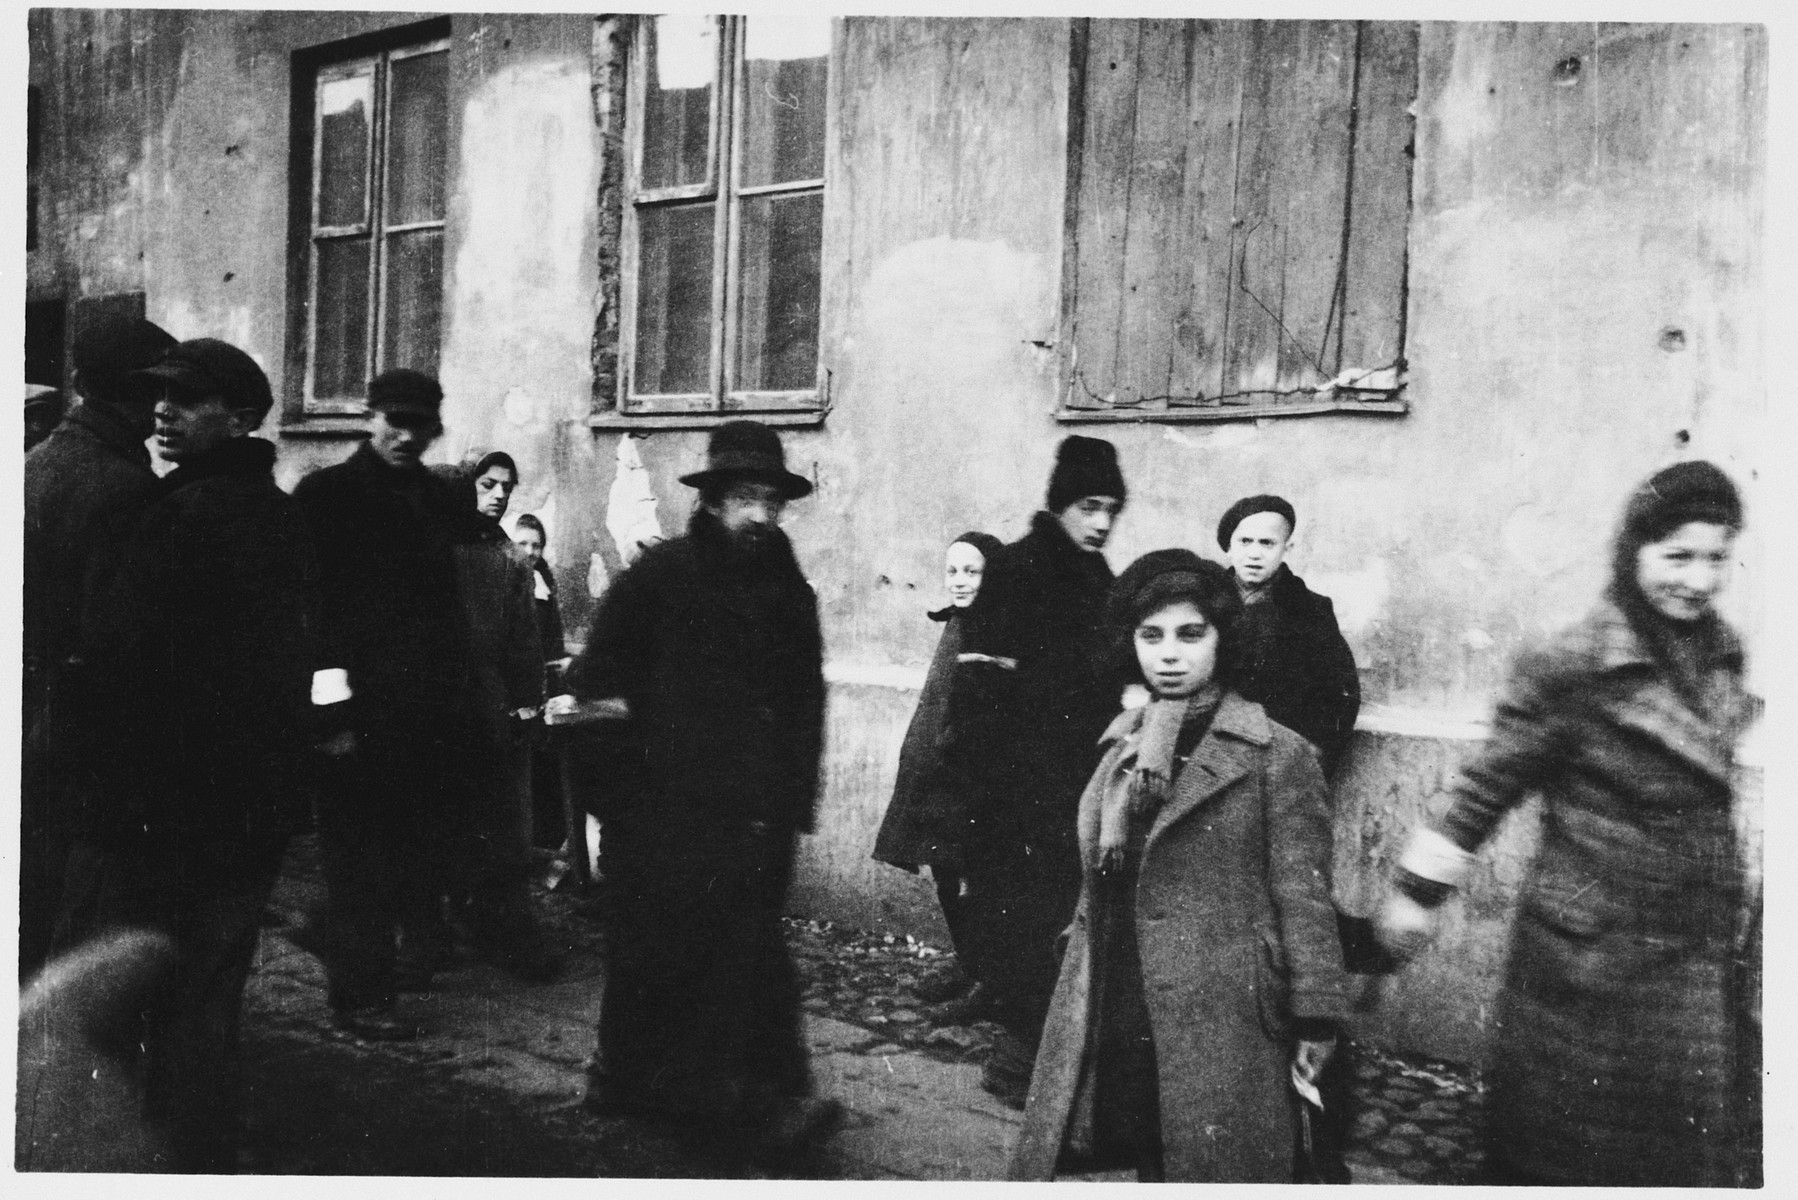 Jews wearing armbands are gathered outside a partially boarded-up building in the Warsaw ghetto.